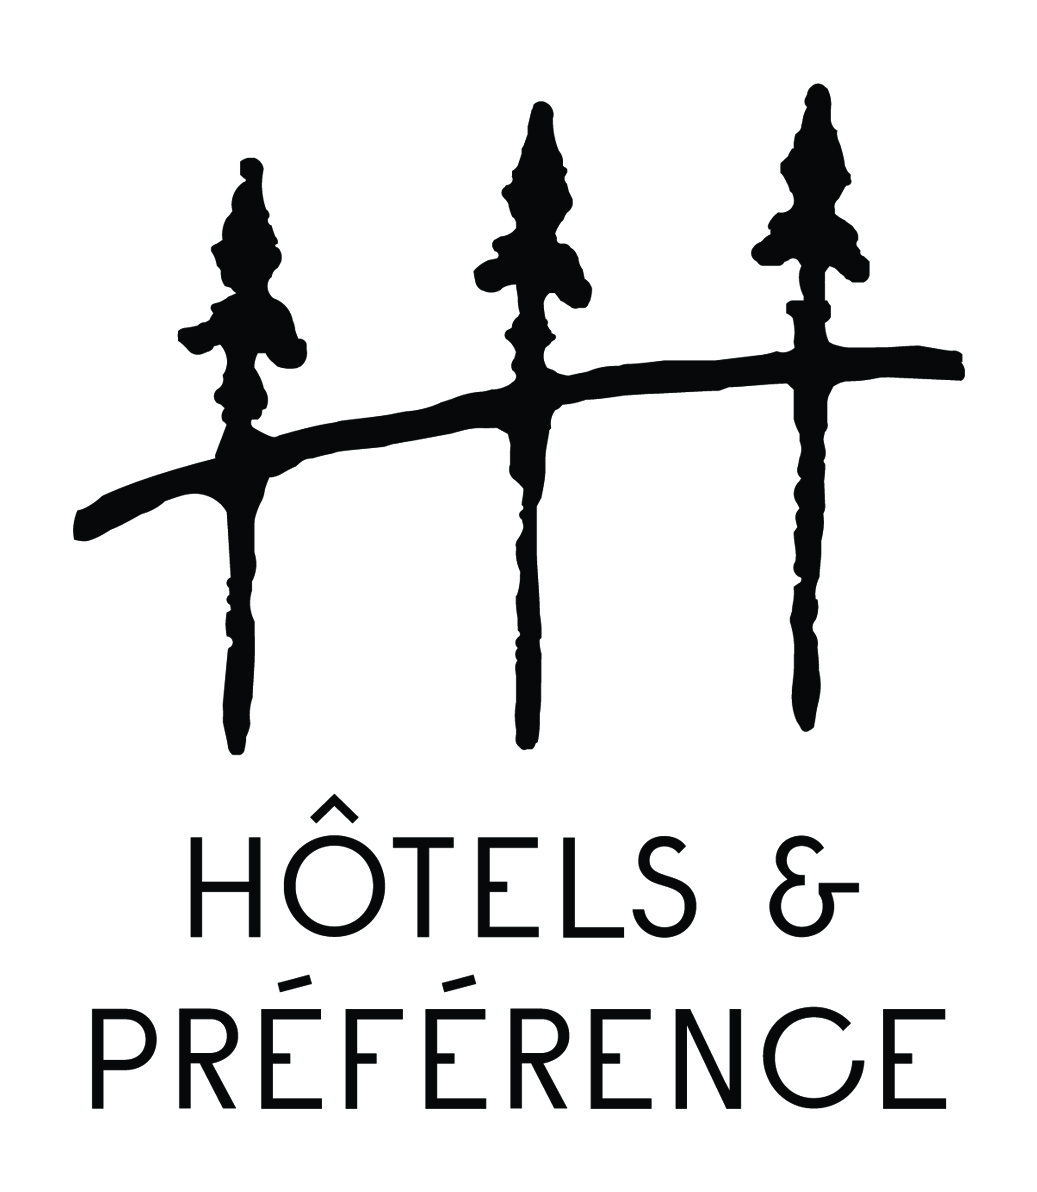 Hotels-preference-logo-black (1)